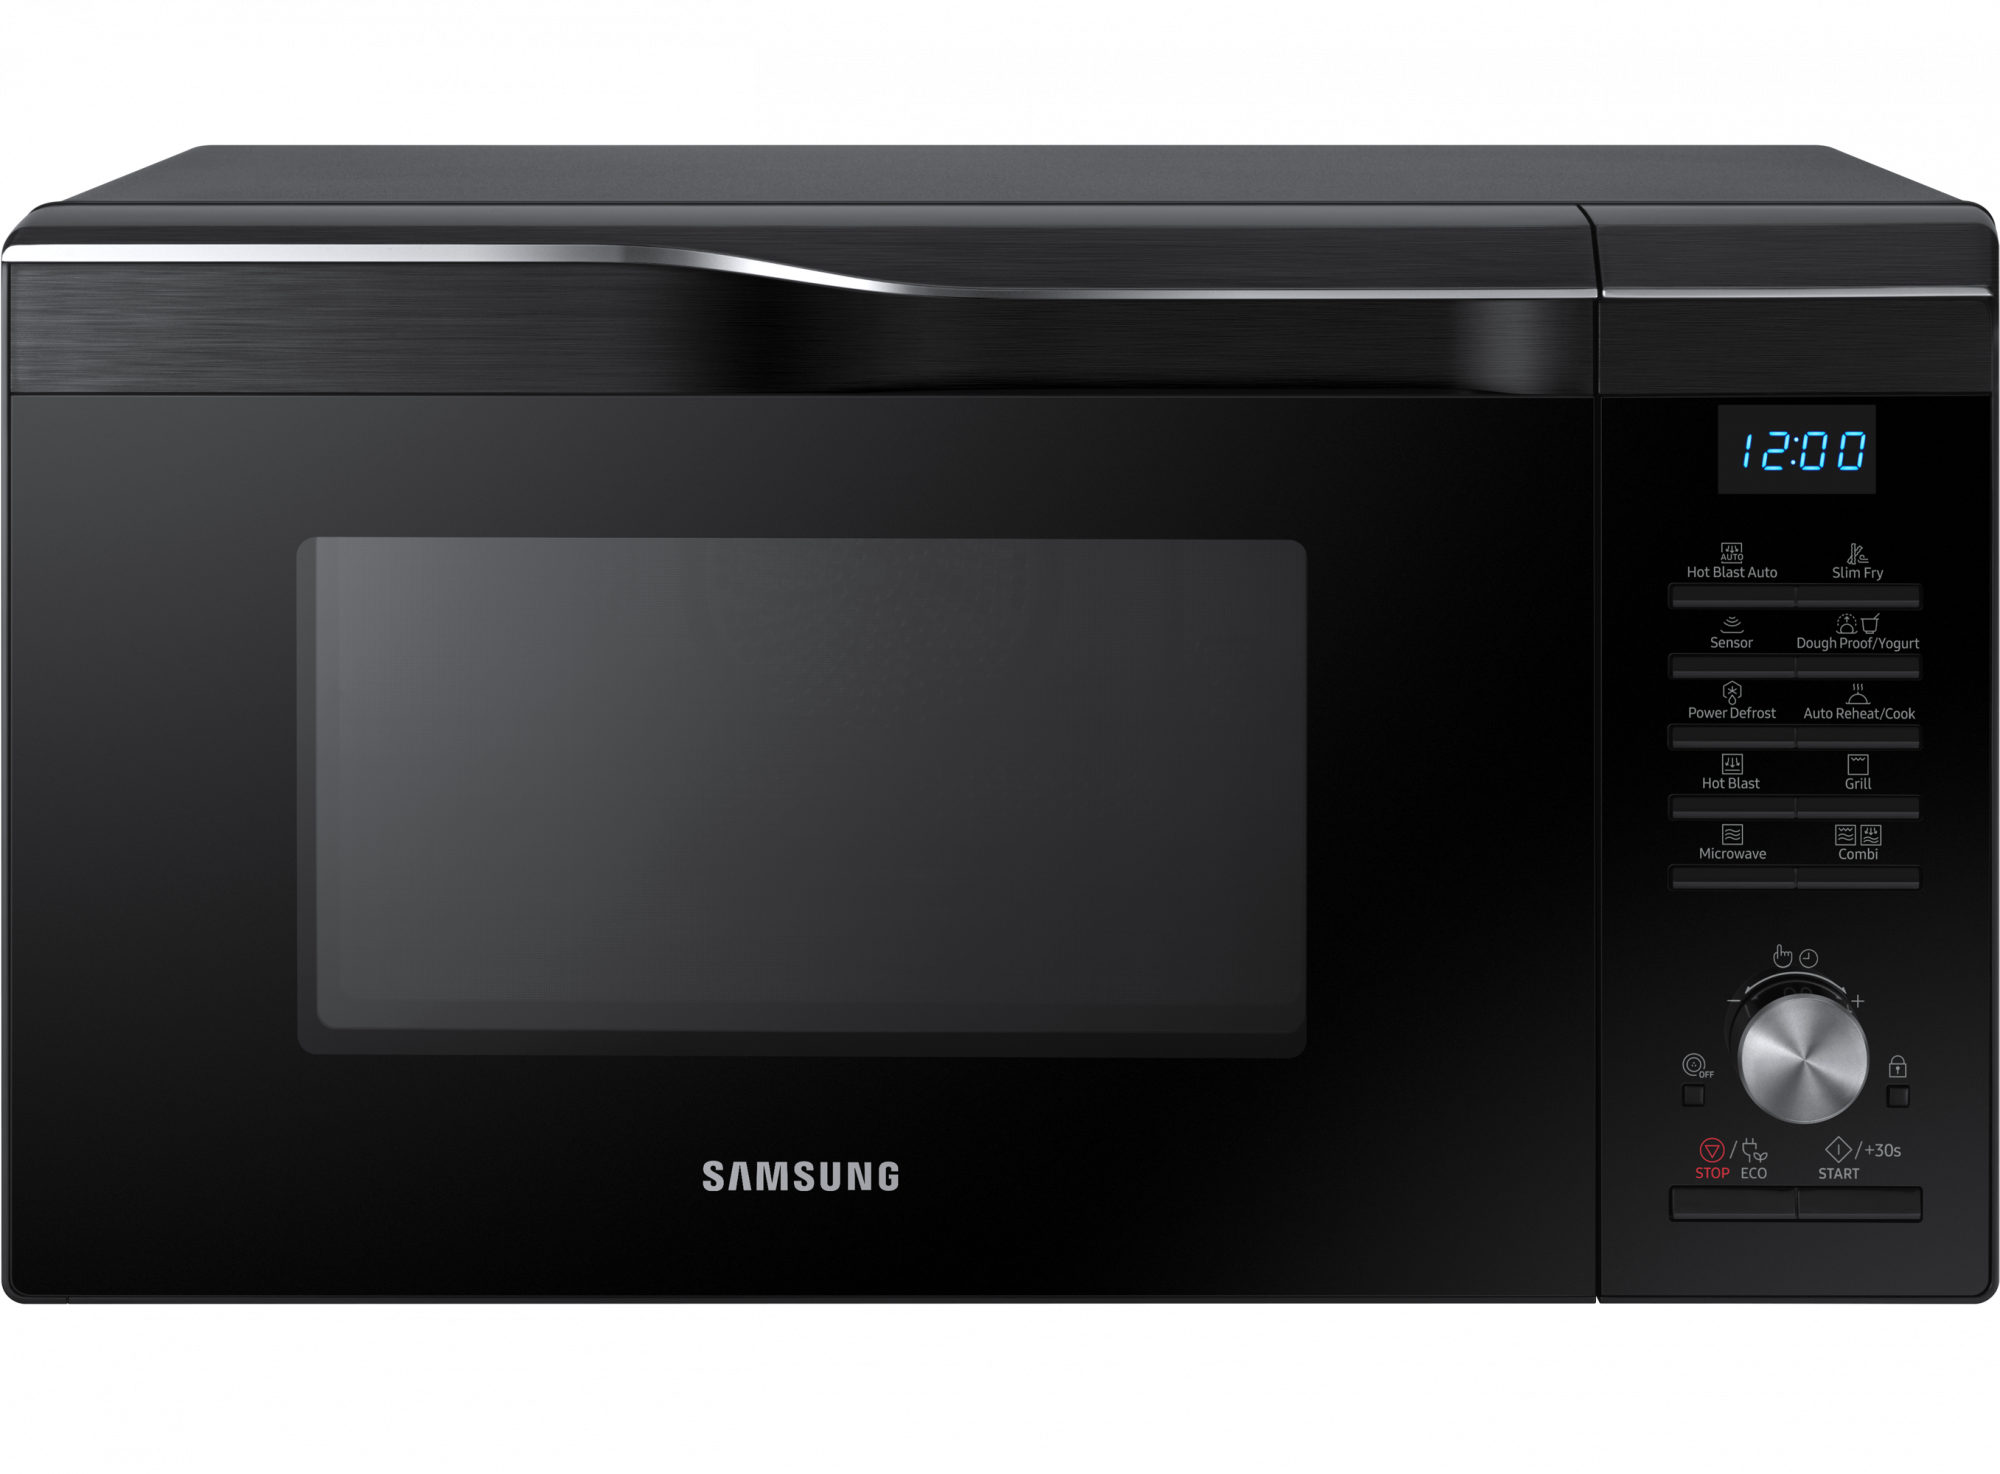 Samsung Easy View™ Convection Microwave Oven With Hotblast™ Technology 28L